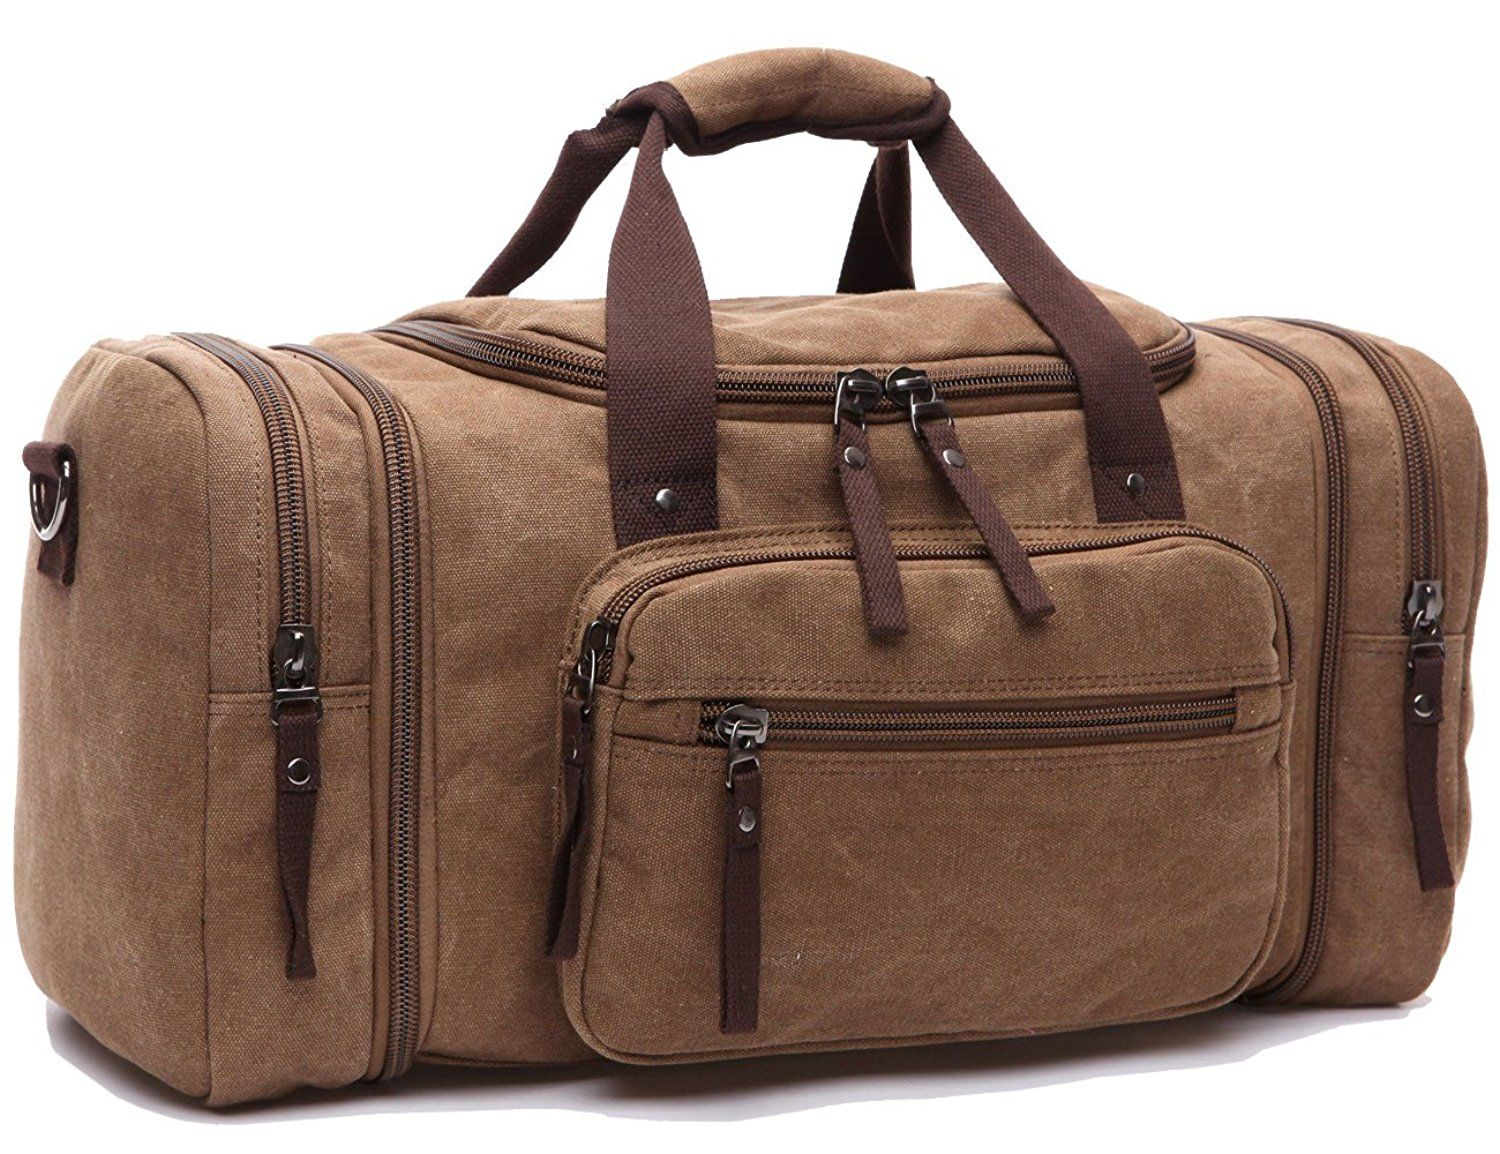 3a5a3c370ed Leaper Extra Large Canvas Travel Tote Duffel Gym Bag Weekender Shoulder  Handbag   You can get more details by clicking on the image.